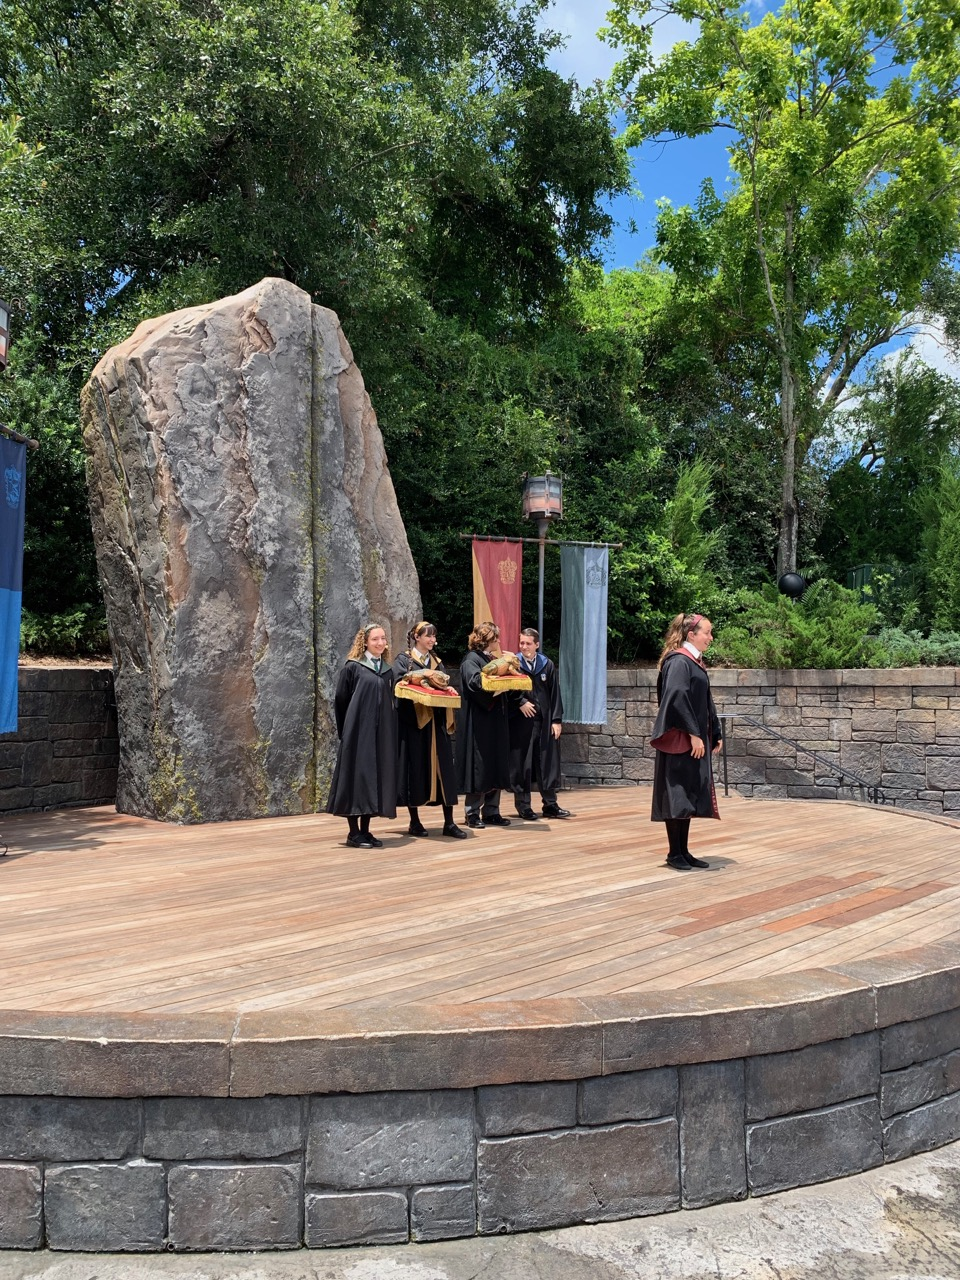 universal orlando summer 2019 trip report part 5 froid choir.jpeg